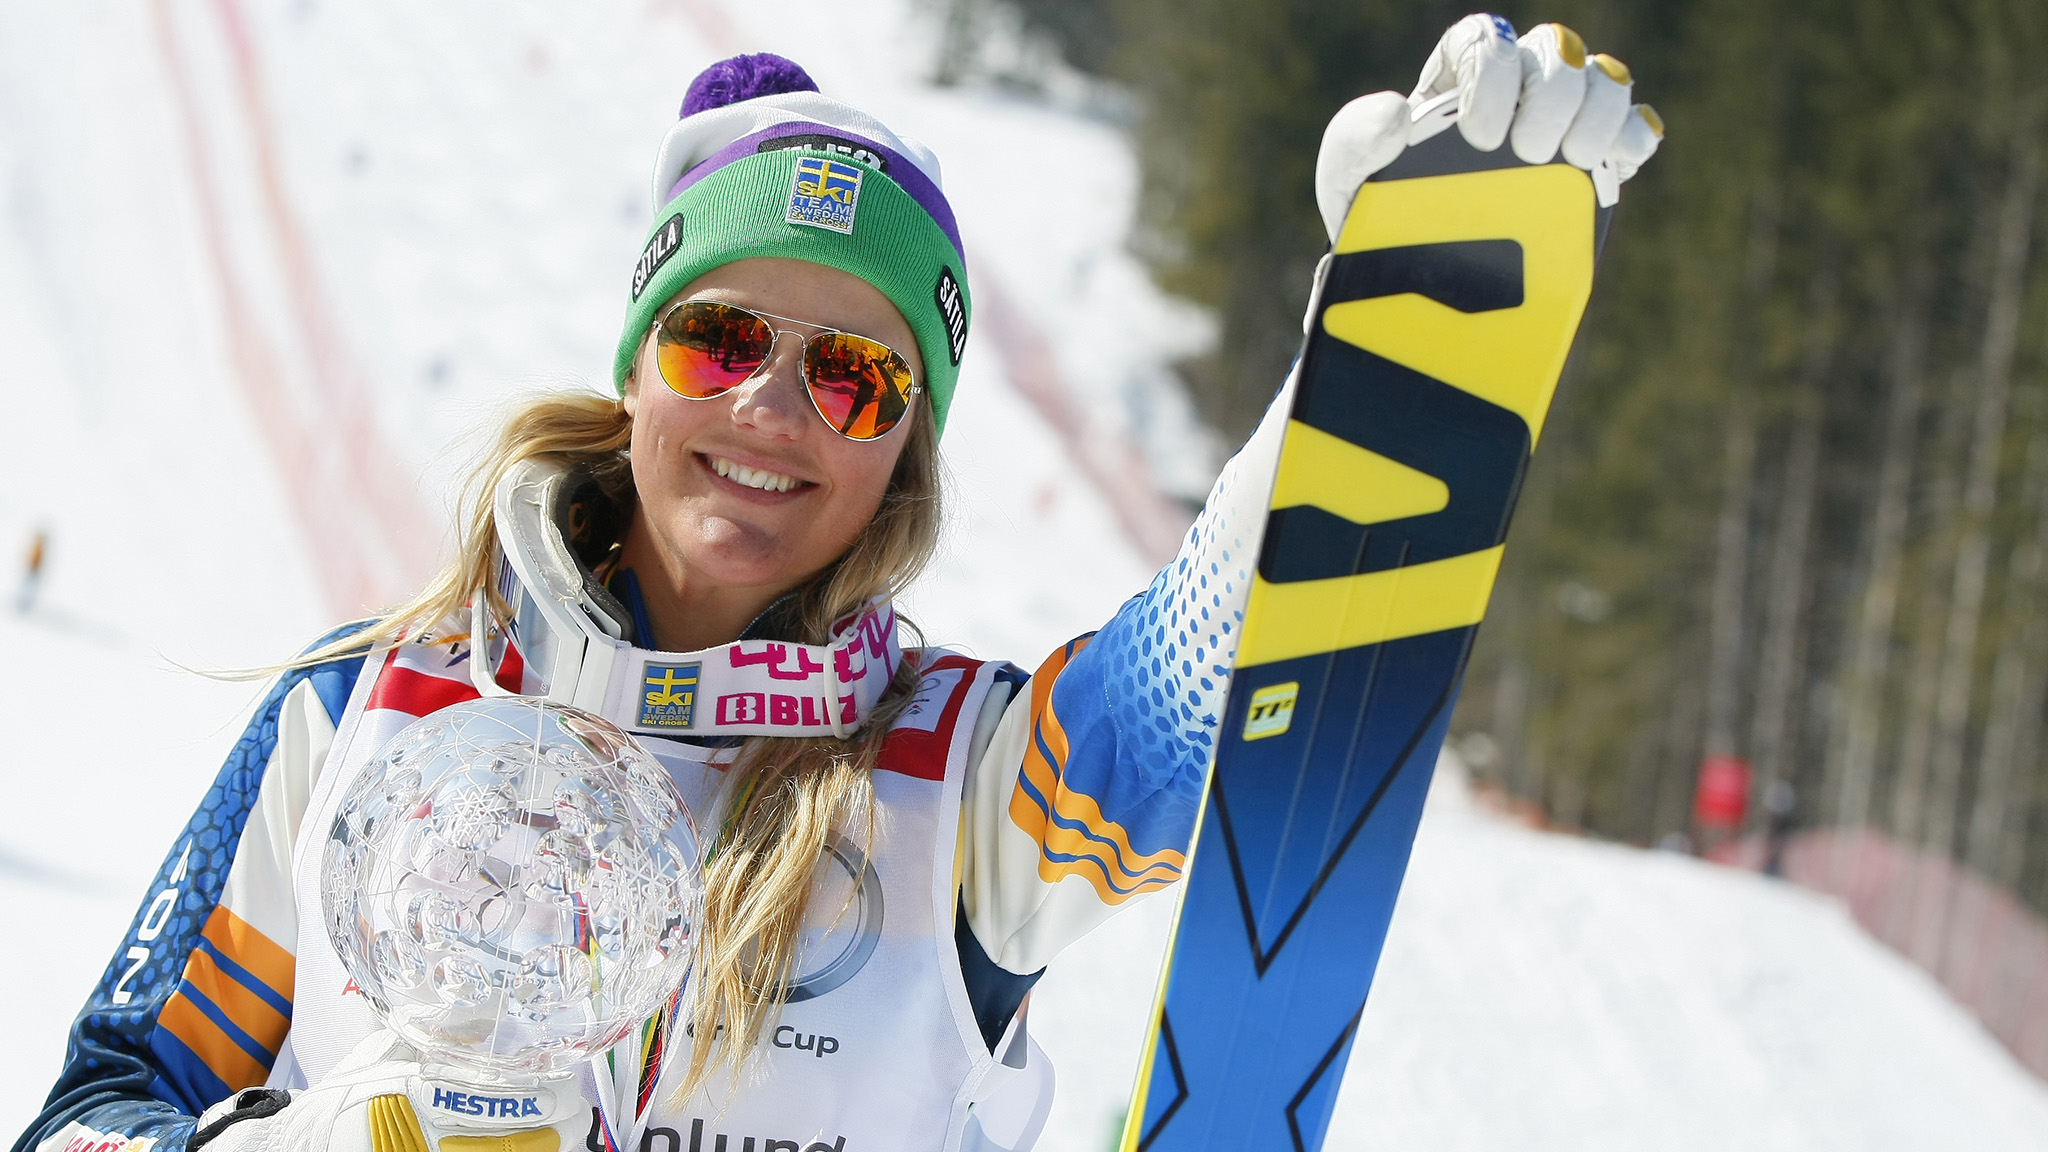 Anna Holmlund, a 28-year-old Swede, will make her X Games debut in 2016's Coors Light Womens Skier X.